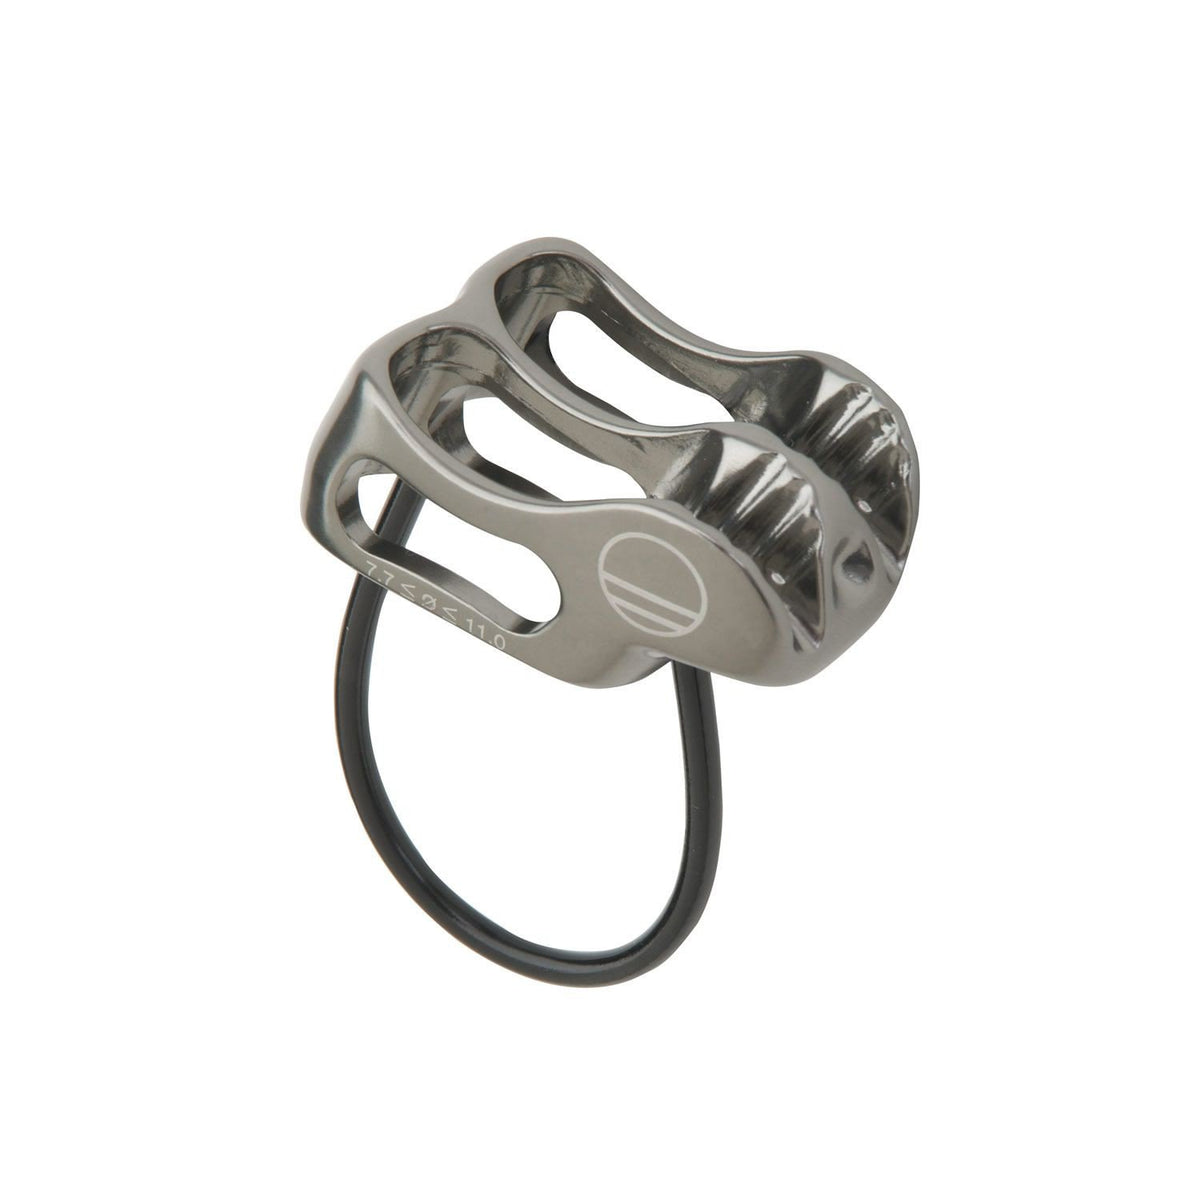 Wild Country Pro Lite belay device, front/side view showing in silver colour